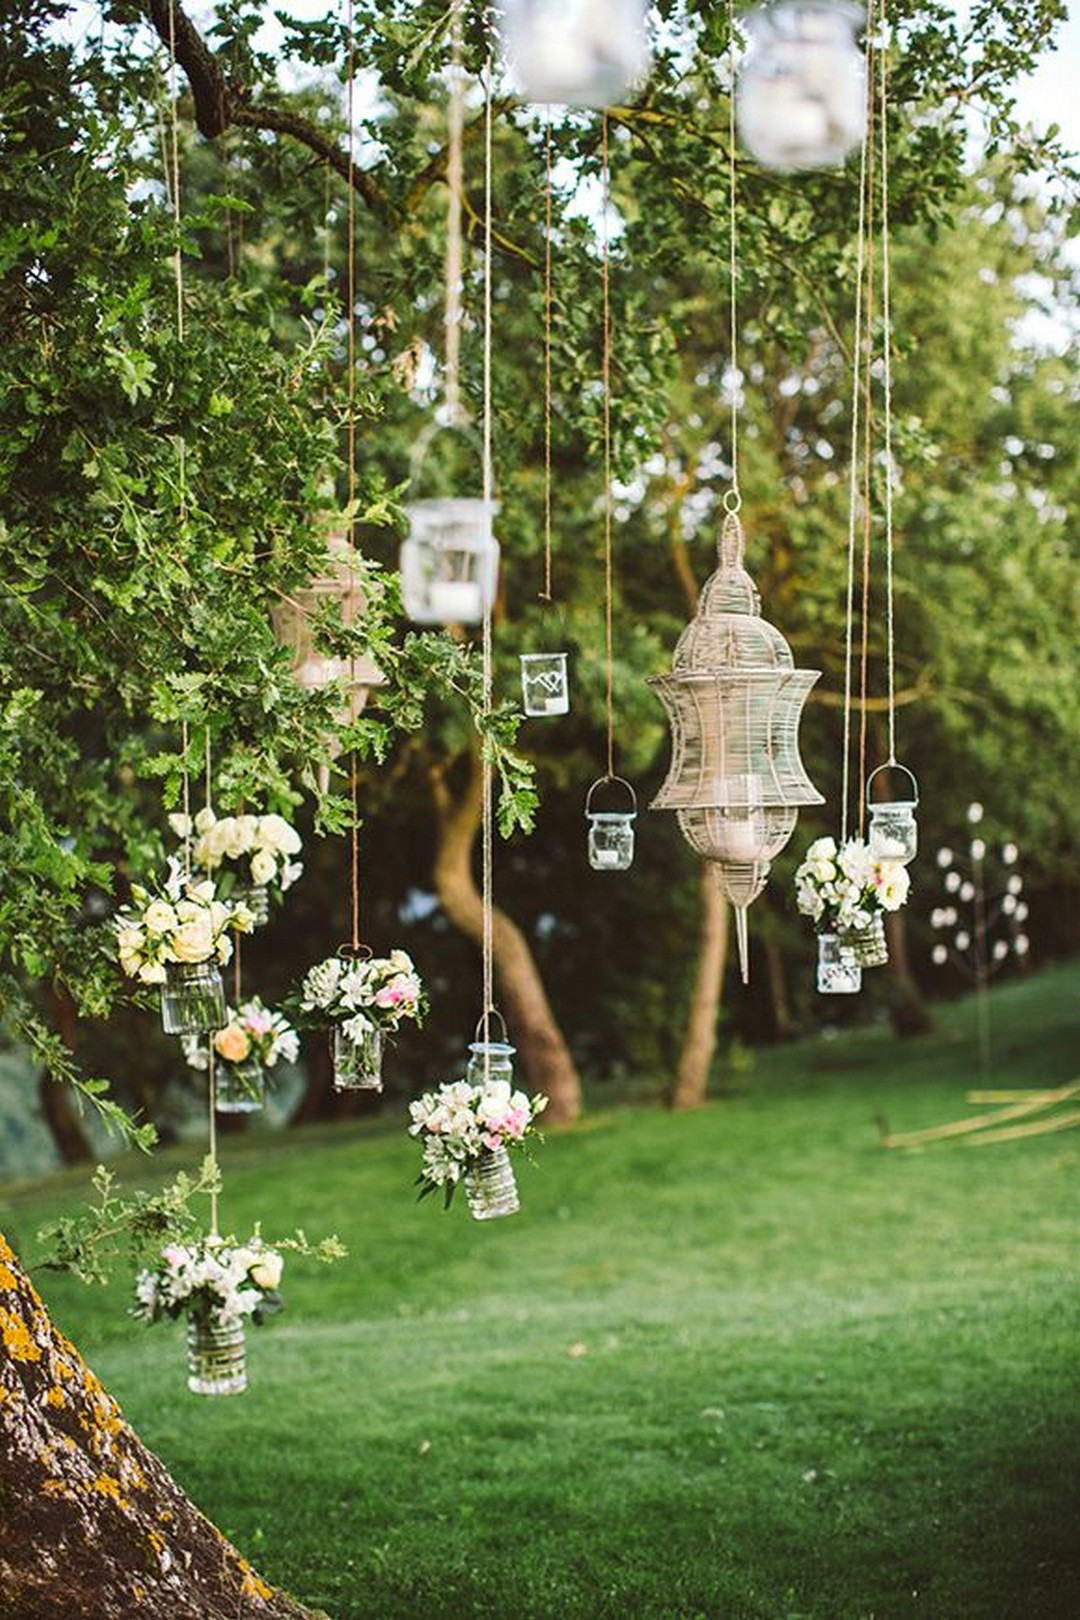 hanging-decorations-in-tree 100+ Surprising Garden Design Ideas You Should Not Miss in 2021